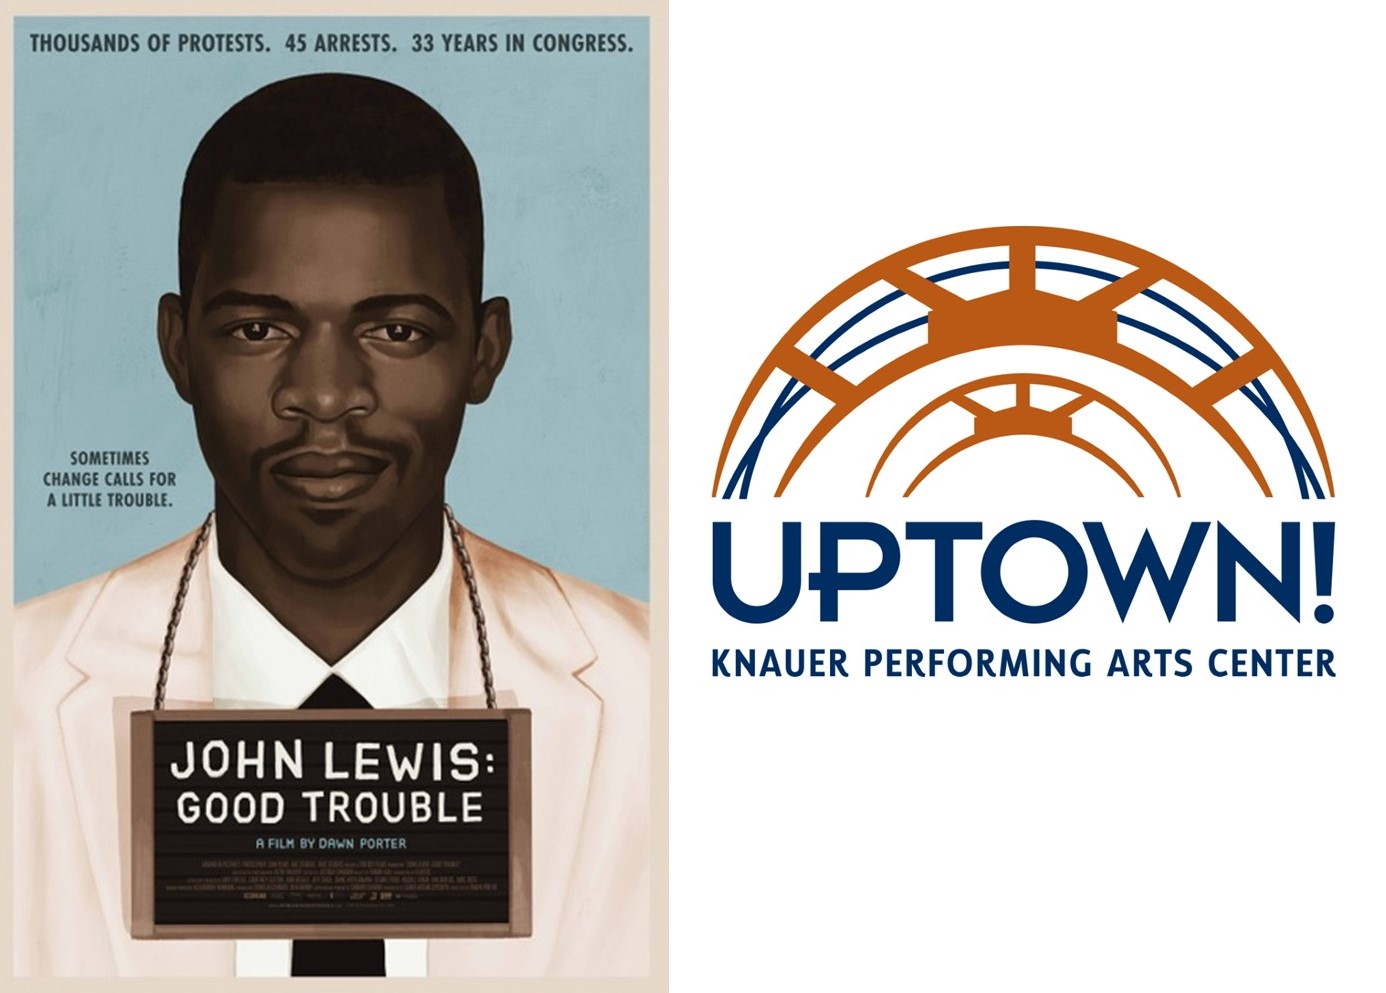 Uptown! to Open Theater on Monday for Free Viewing of New Documentary on Civil Rights Hero